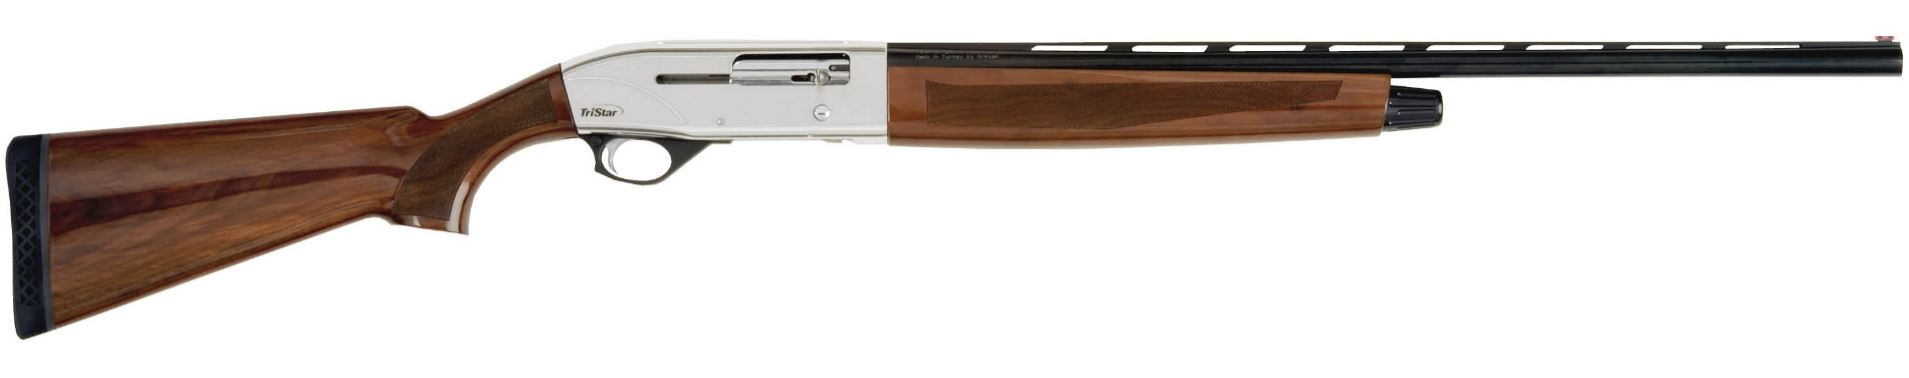 TriStar Sporting Arms Viper G2 Silver 20 Gauge